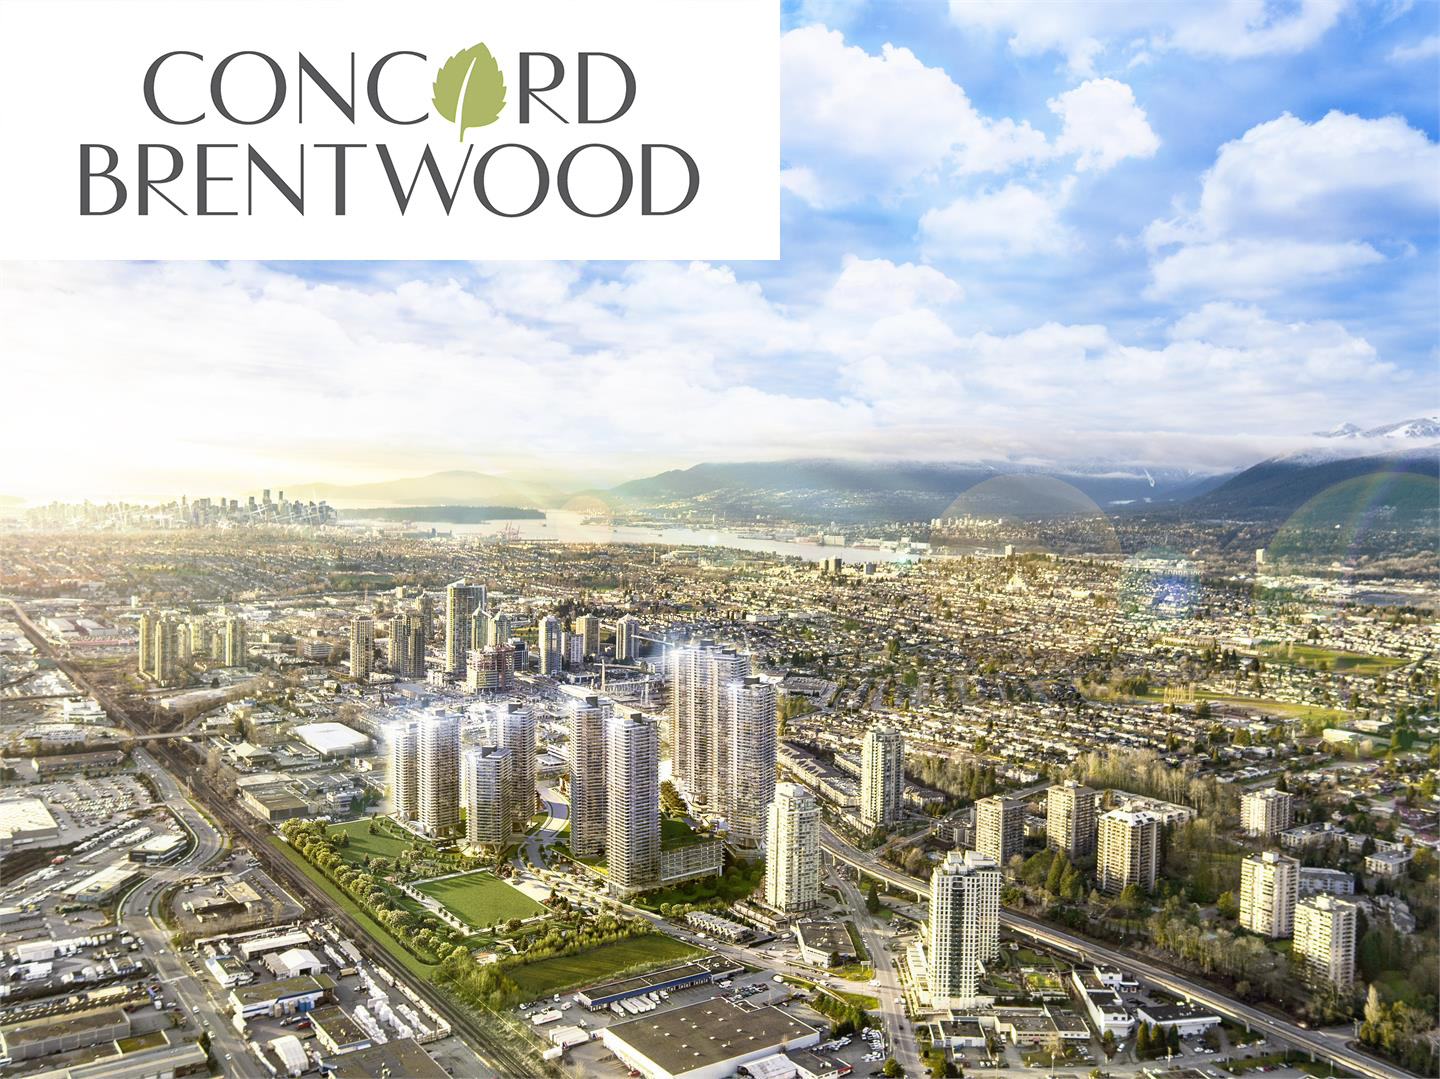 Concord Brentwood